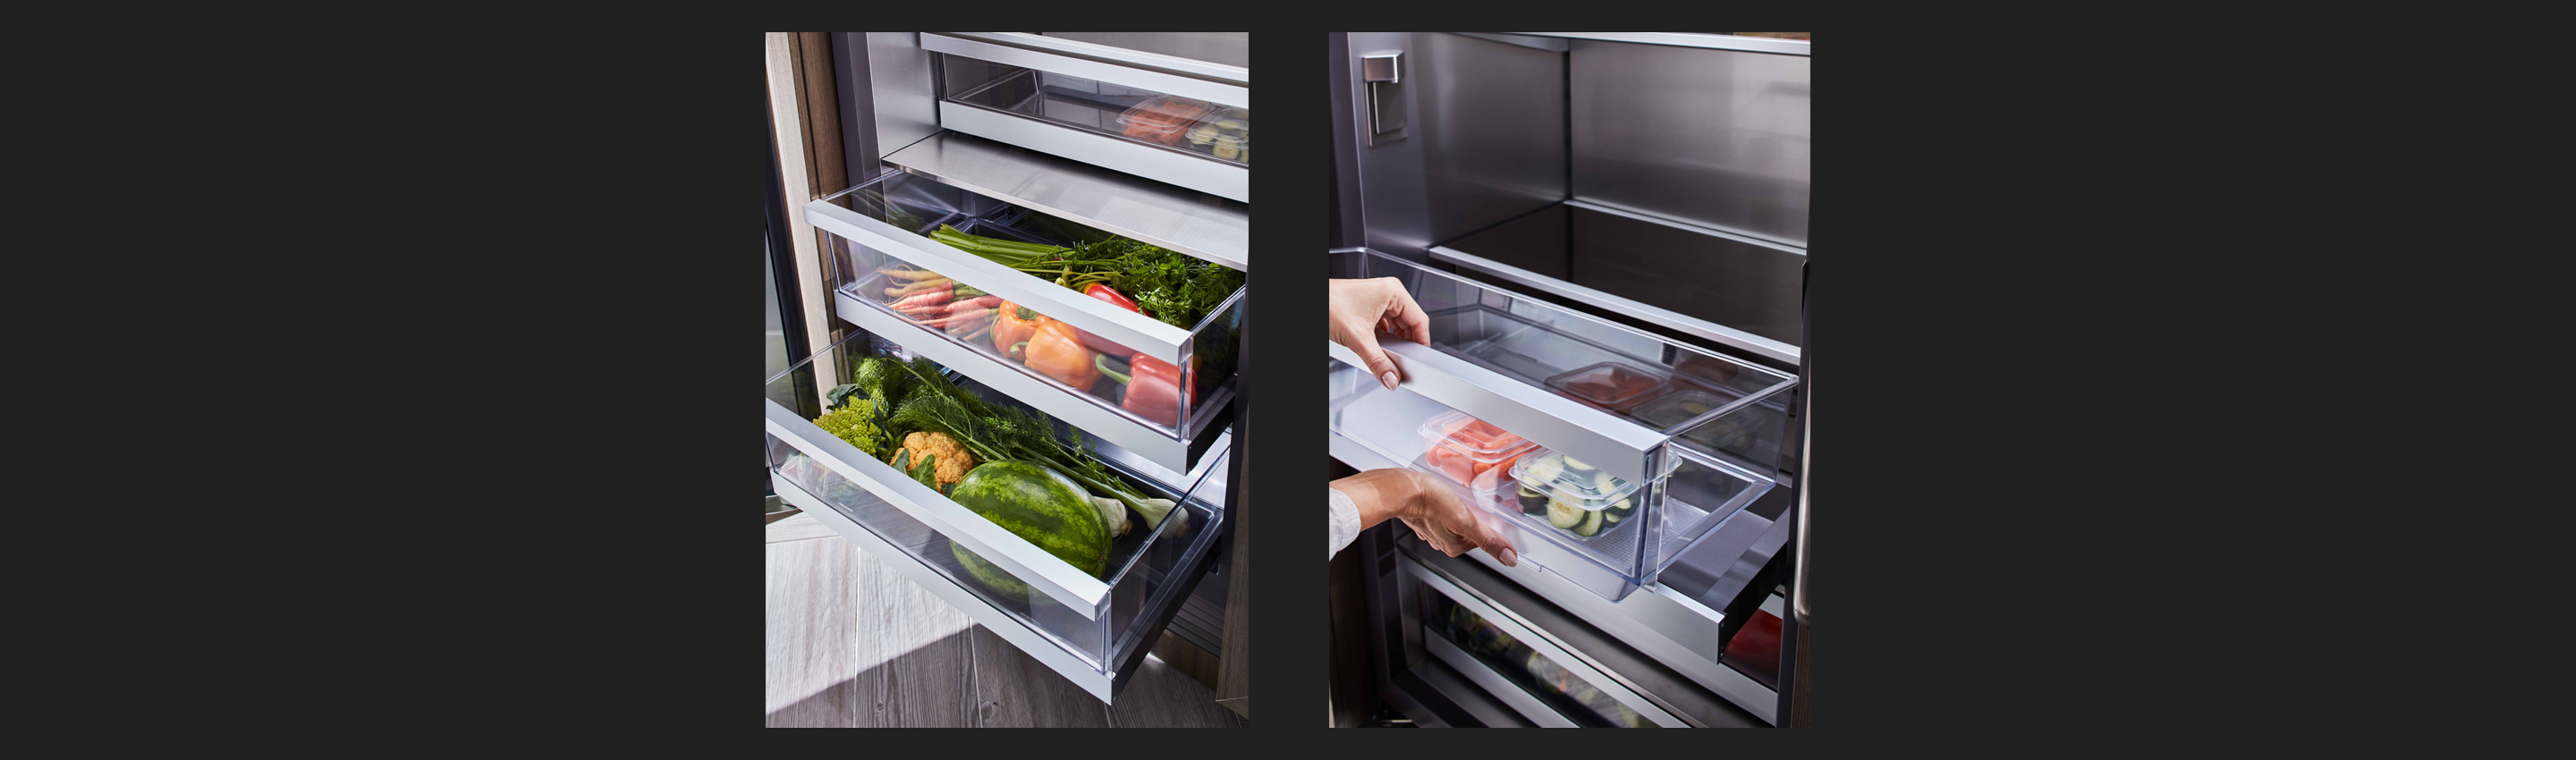 Signature Kitchen Suite | 24-inch Integrated Column Refrigerator